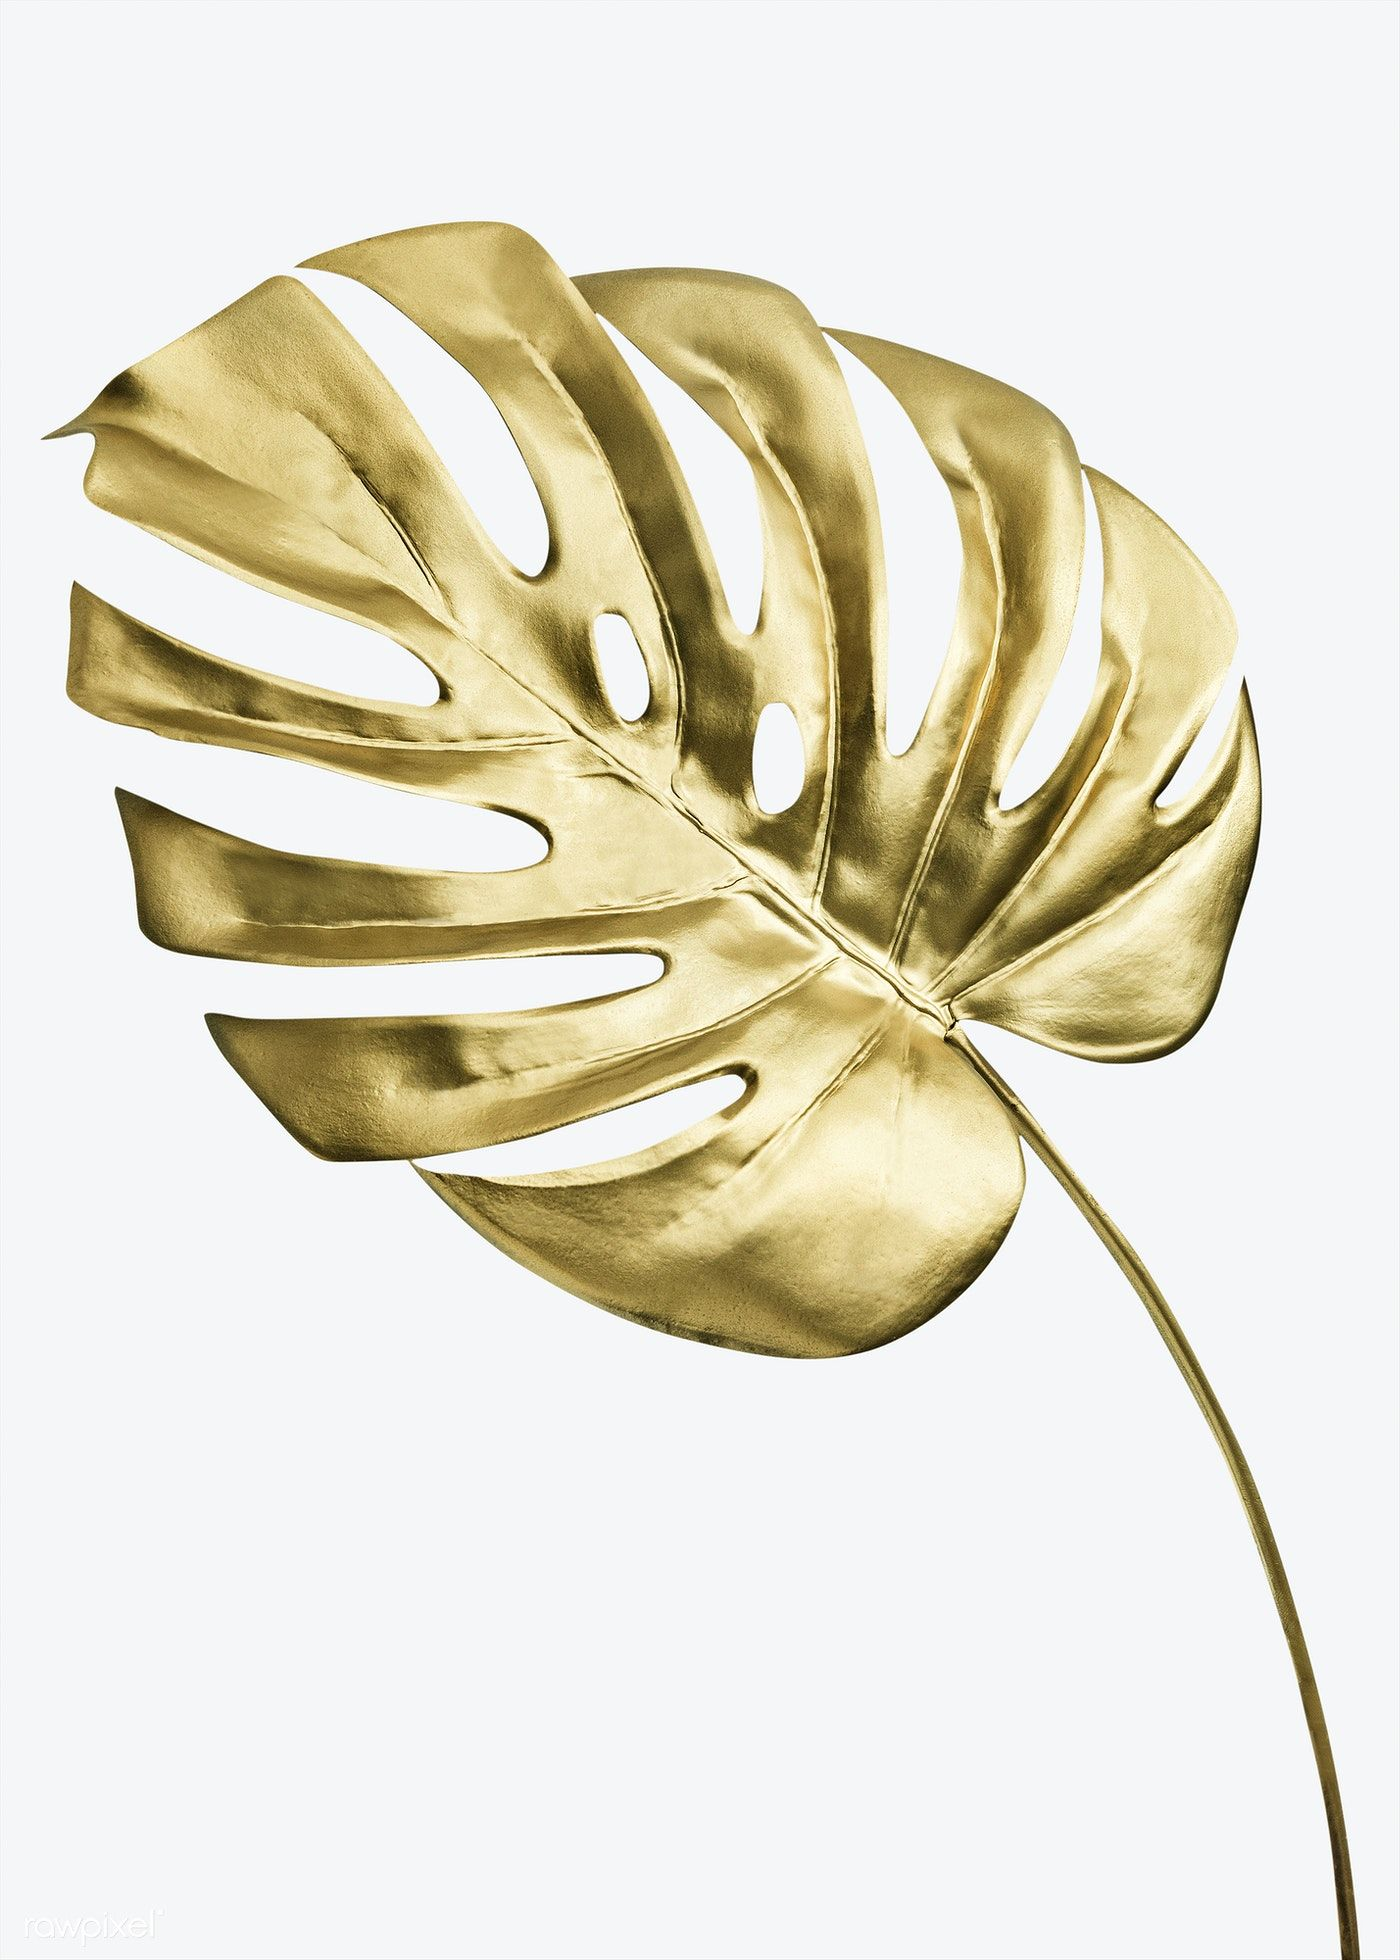 Download Premium Psd Of Golden Monstera Leaf On A White Background Mockup Monstera Leaf Monstera Black And White Background